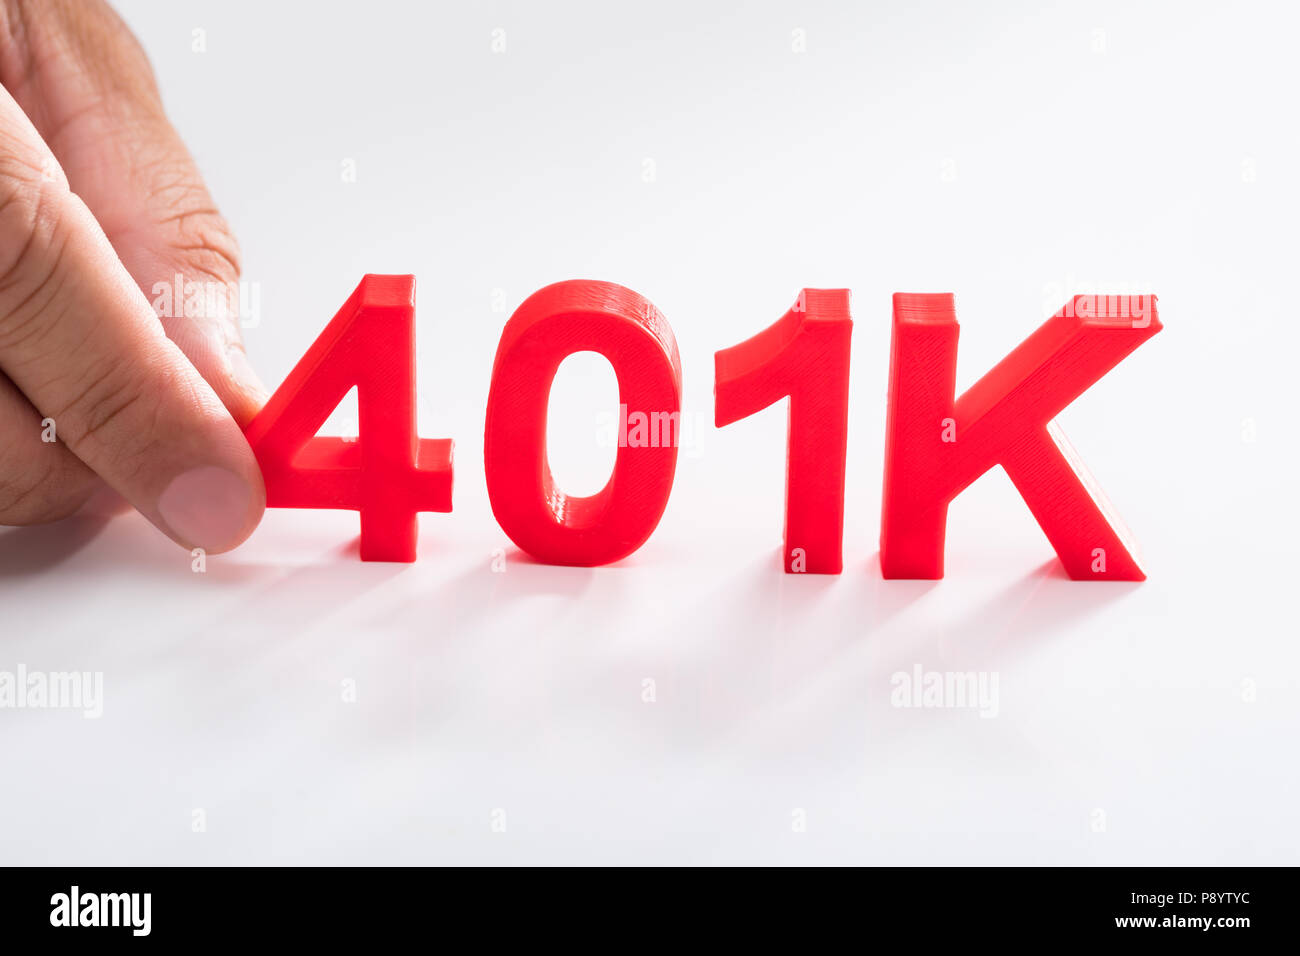 Businessperson holding red 401k pension plan on white background - Stock Image